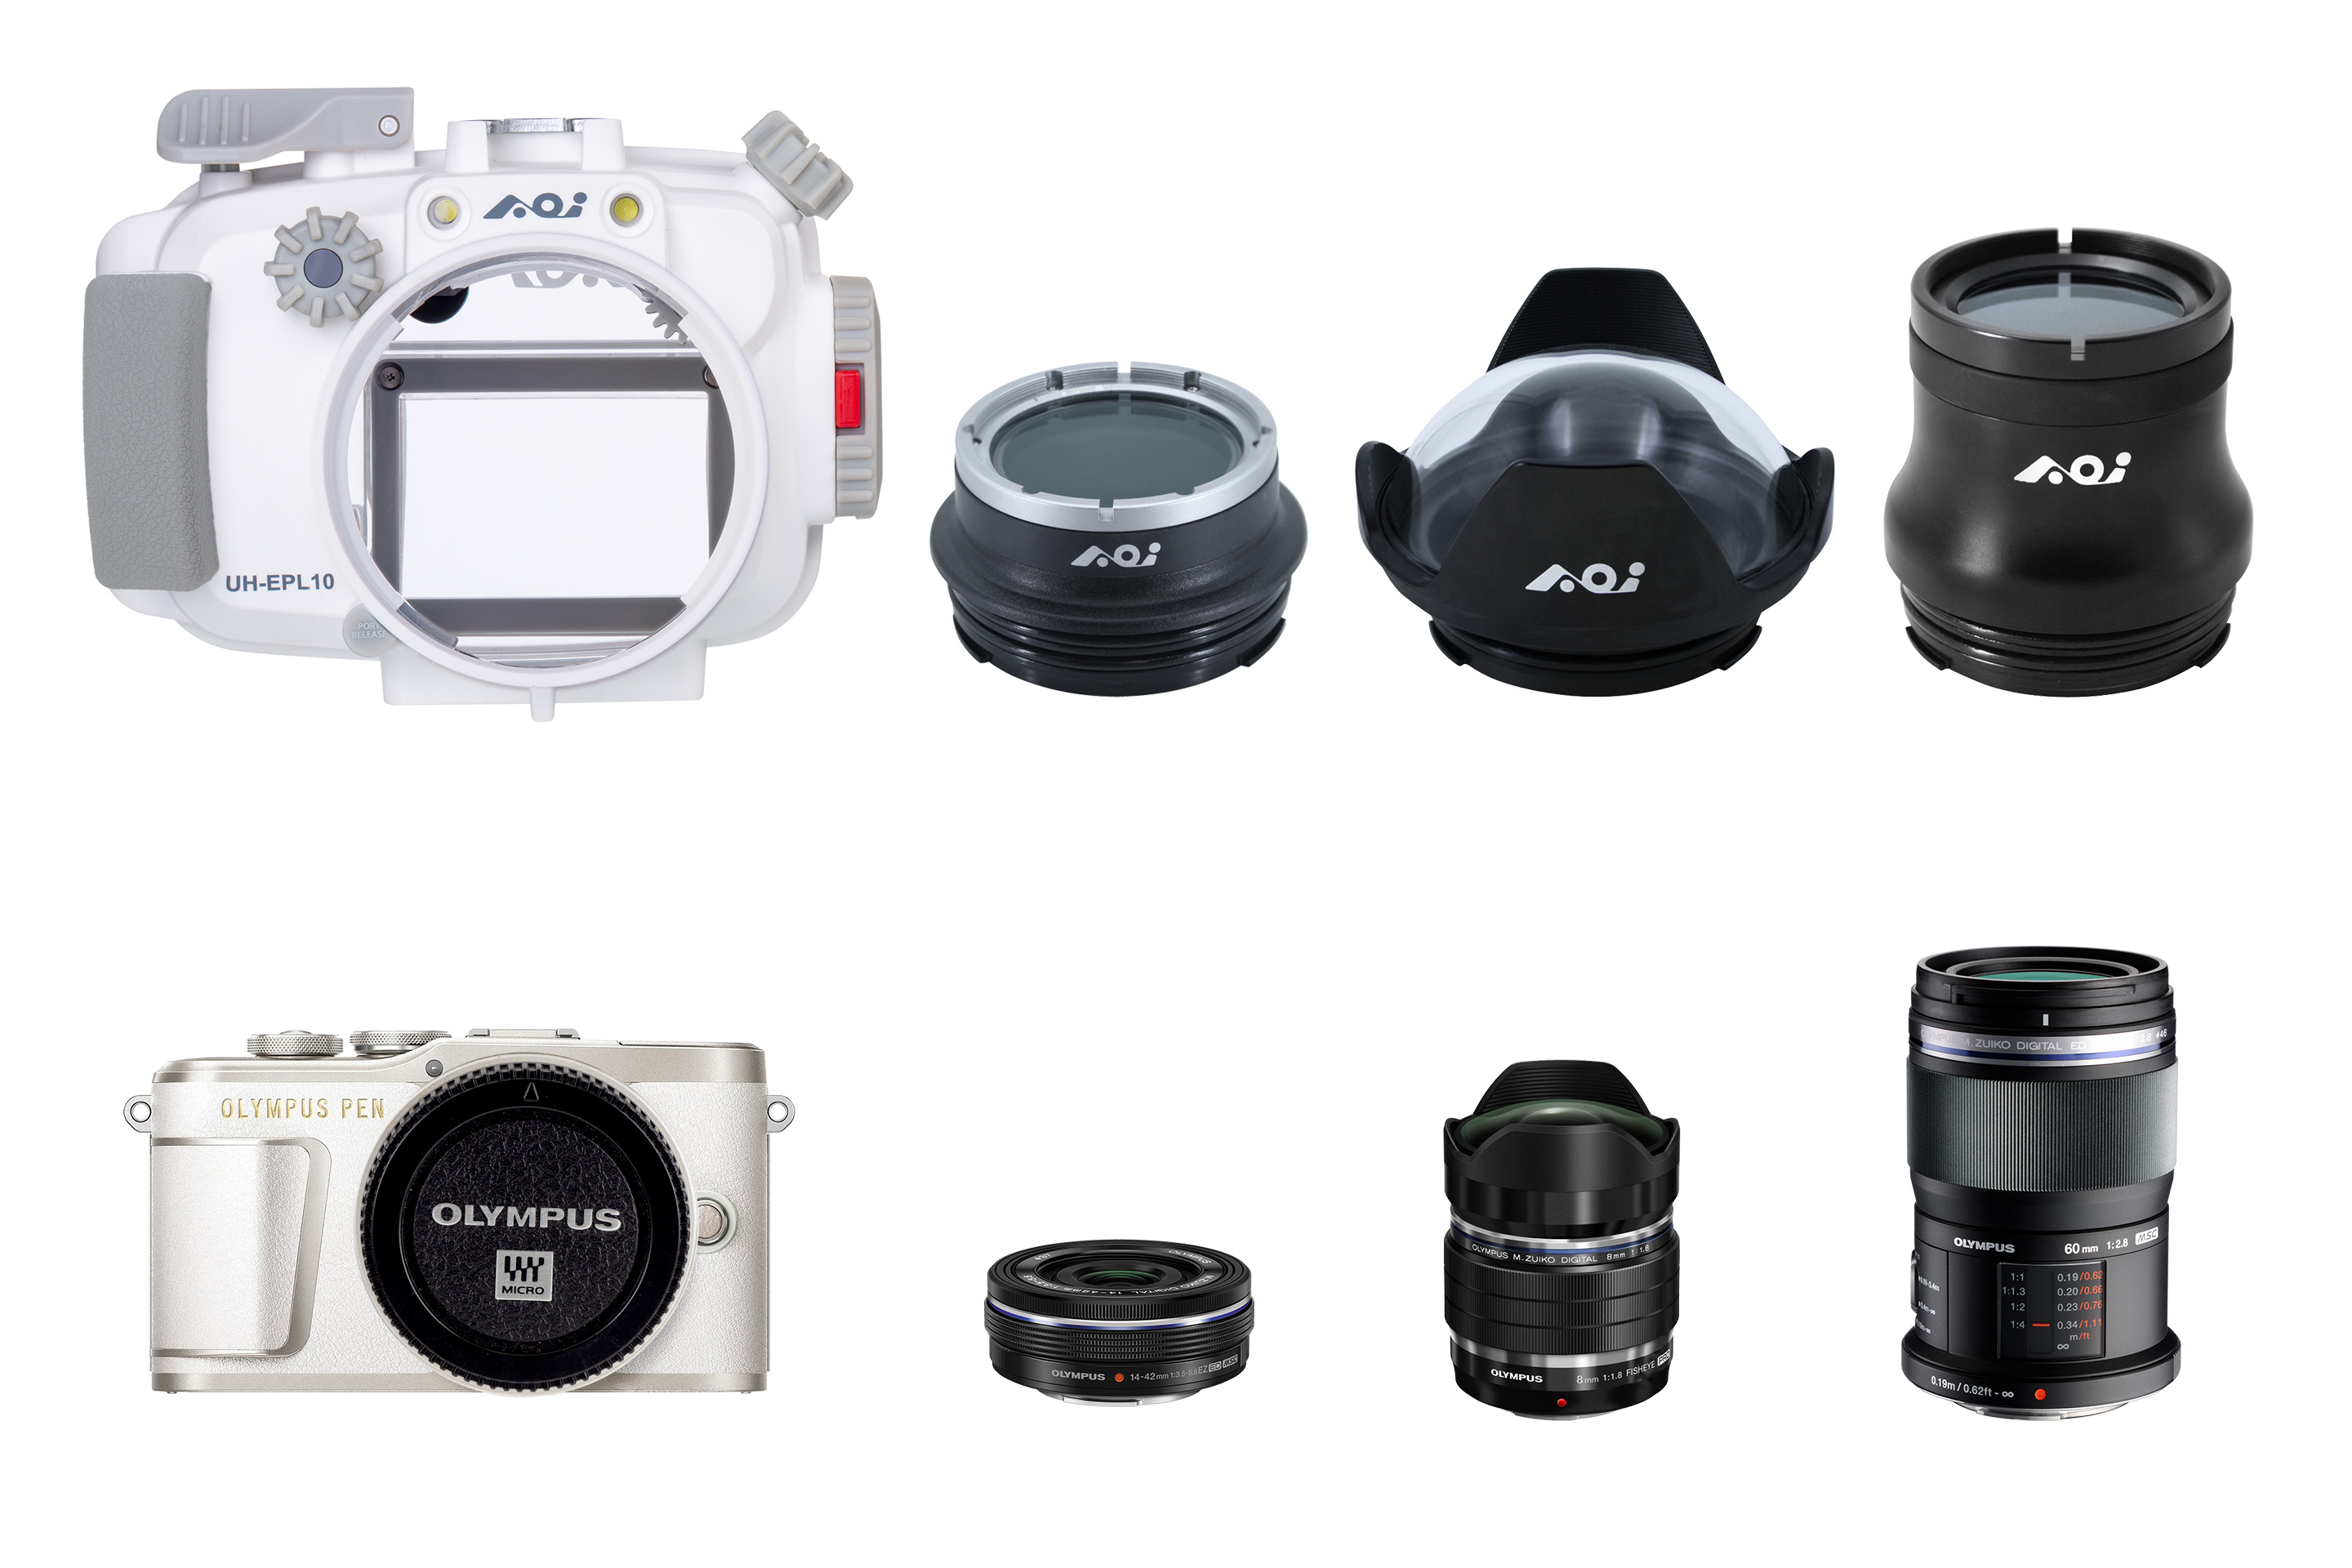 _11_-_Variety_of_Lens_and_Ports.jpg